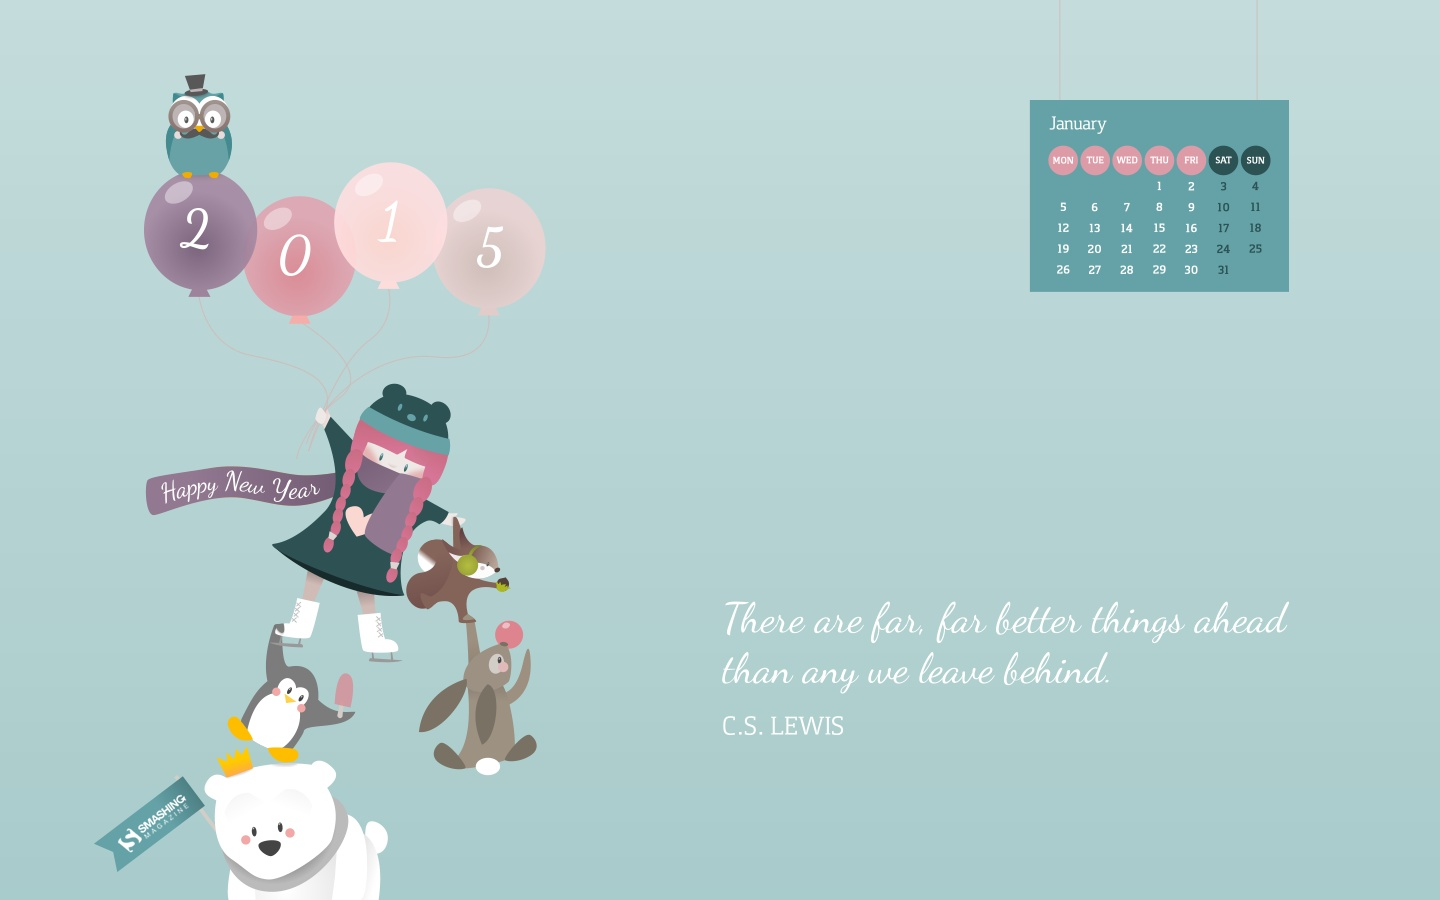 In January Calendar Wallpaper 51317